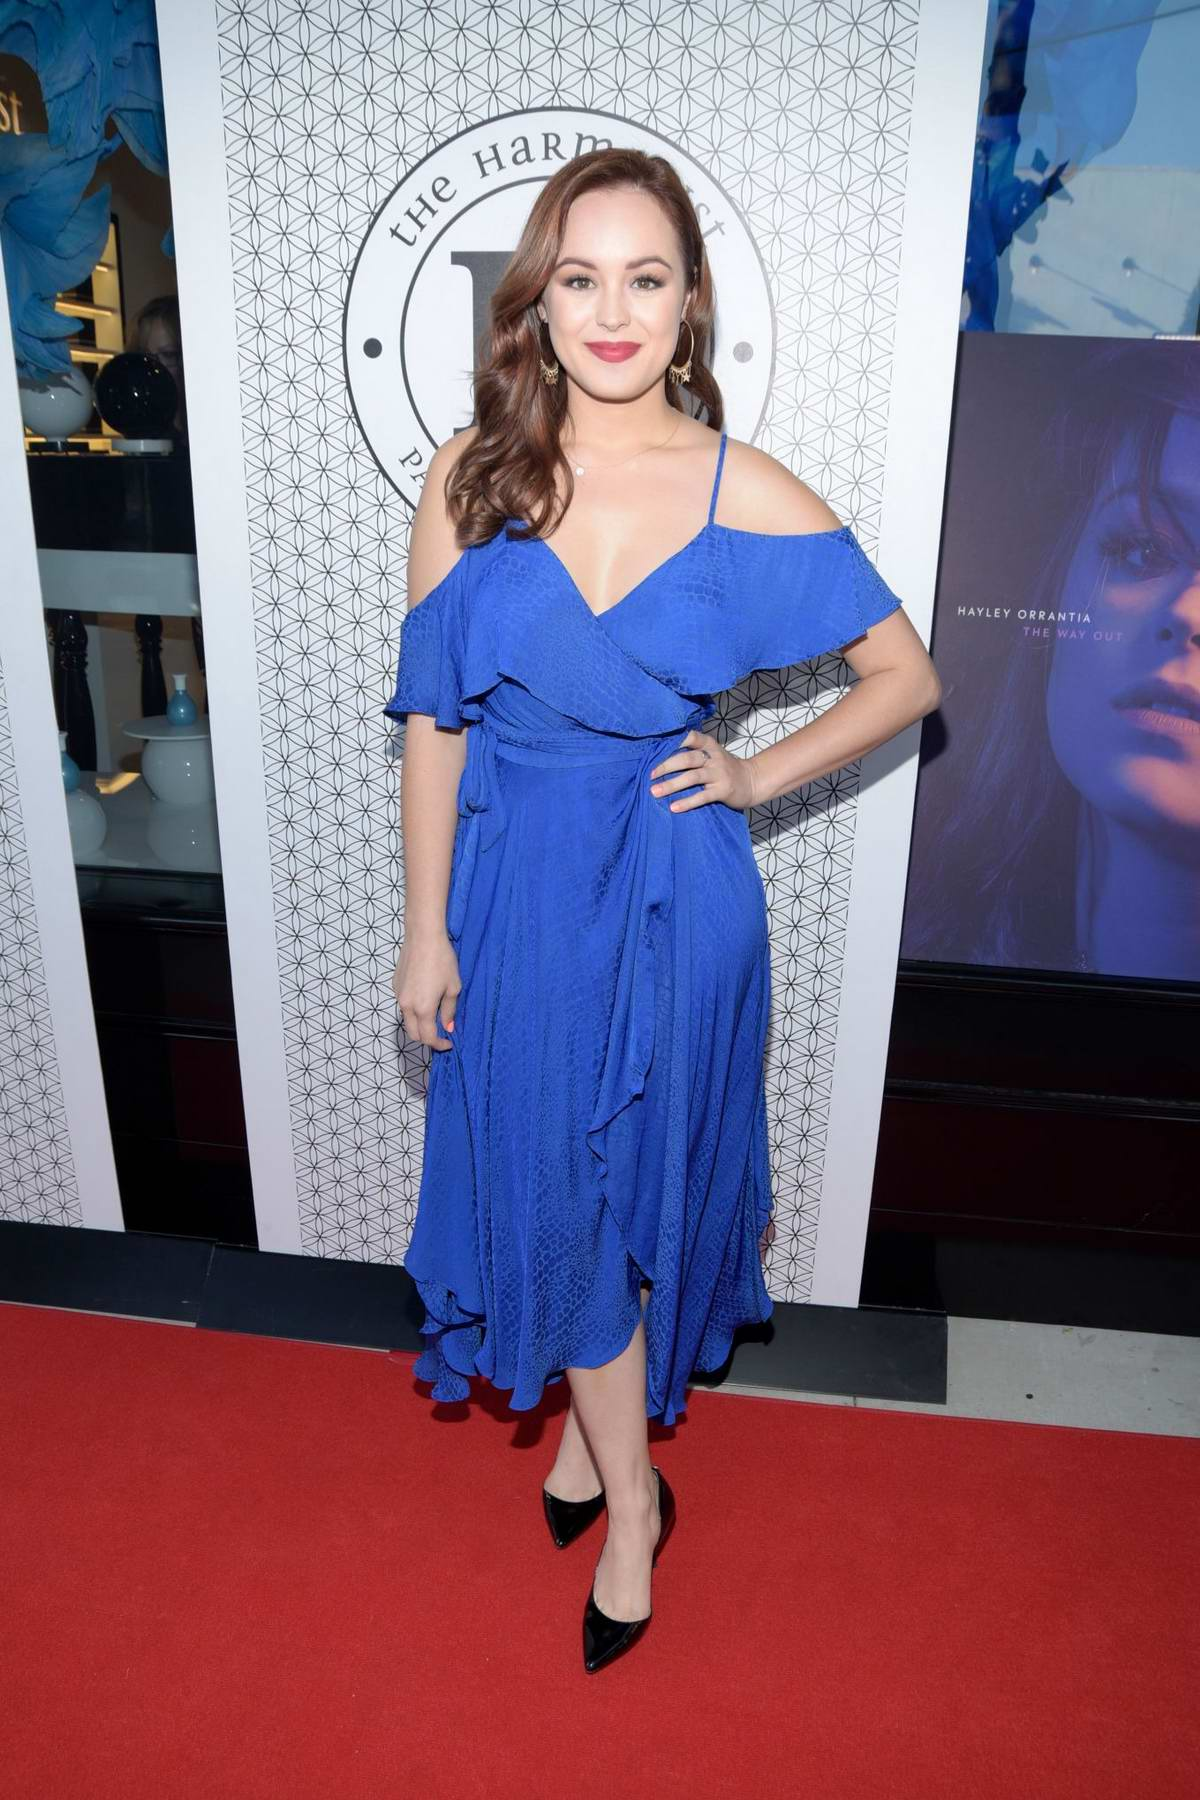 Hayley Orrantia celebrates her New EP Release at The Harmonist in West Hollywood, Los Angeles